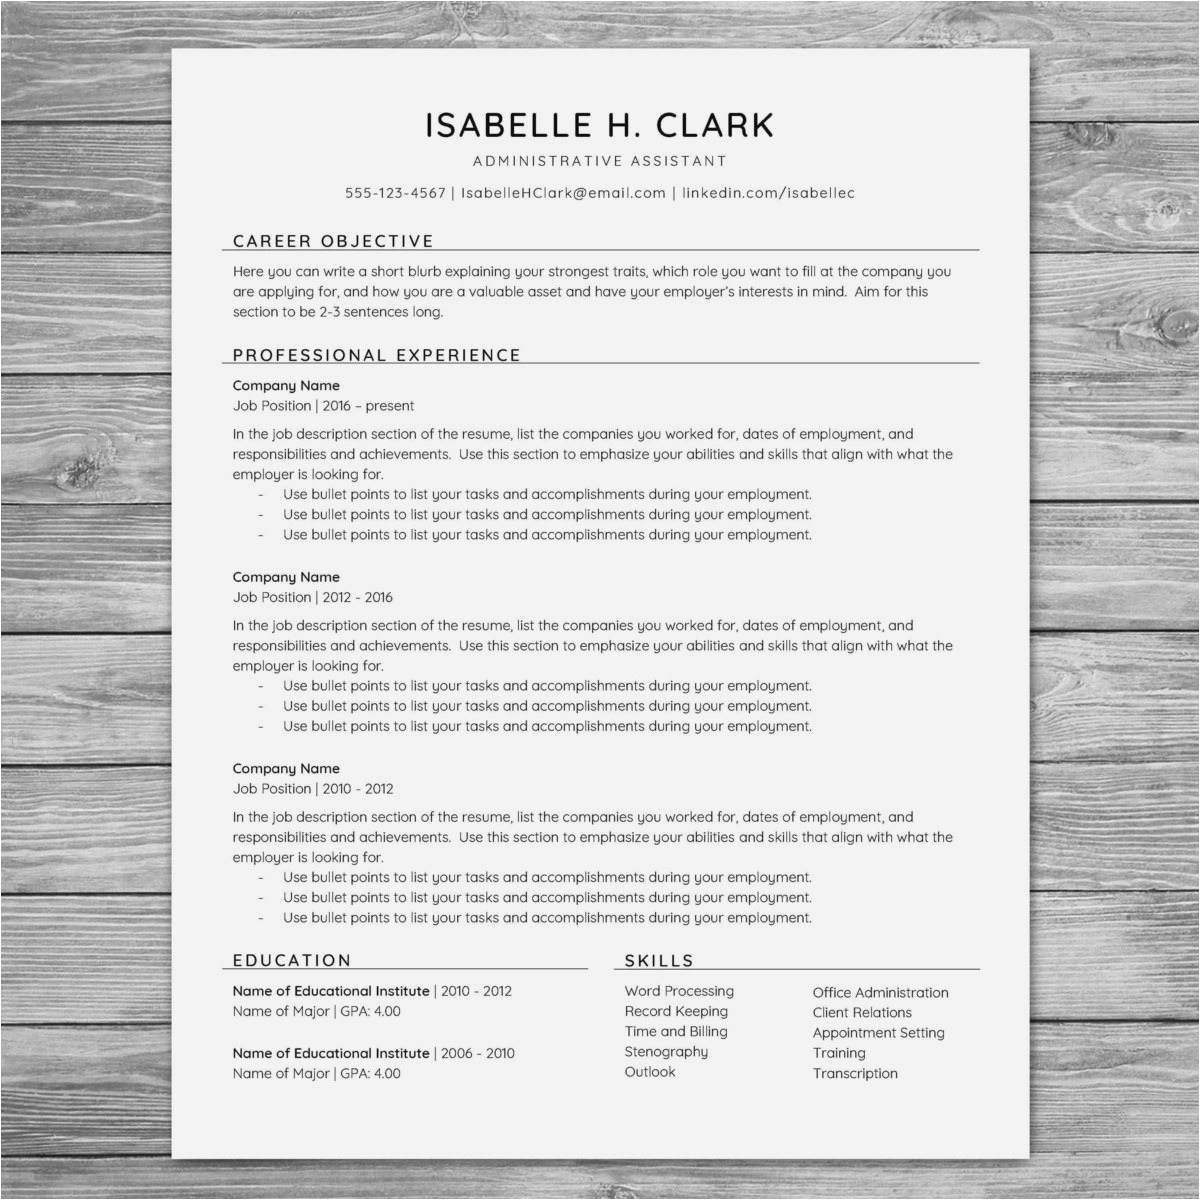 Paralegal Resume Skills - Cool 4 Letter Names Free Cover Letter Name Fresh Paralegal Resume 0d